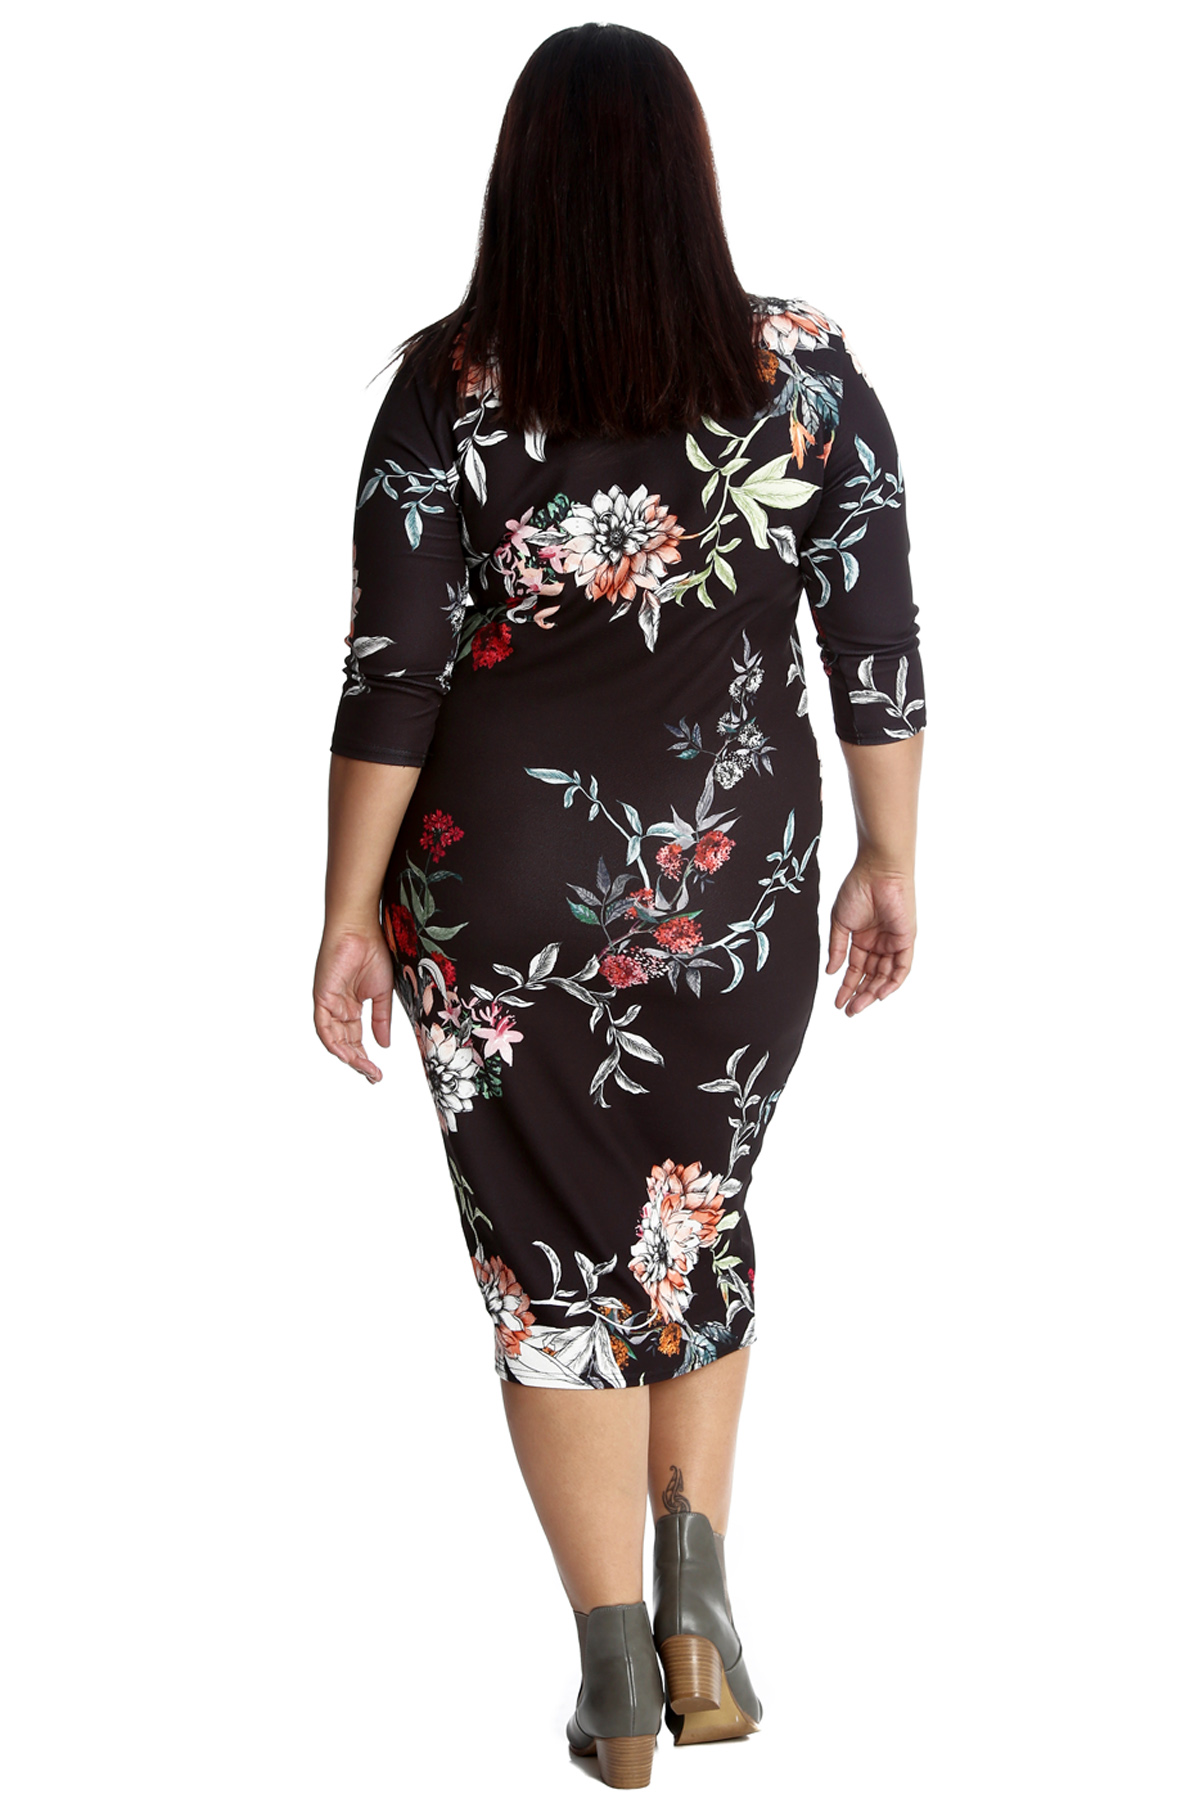 New Ladies Dress Plus Size Womens Floral Midi Knee Length Bodycon Style Nouvelle